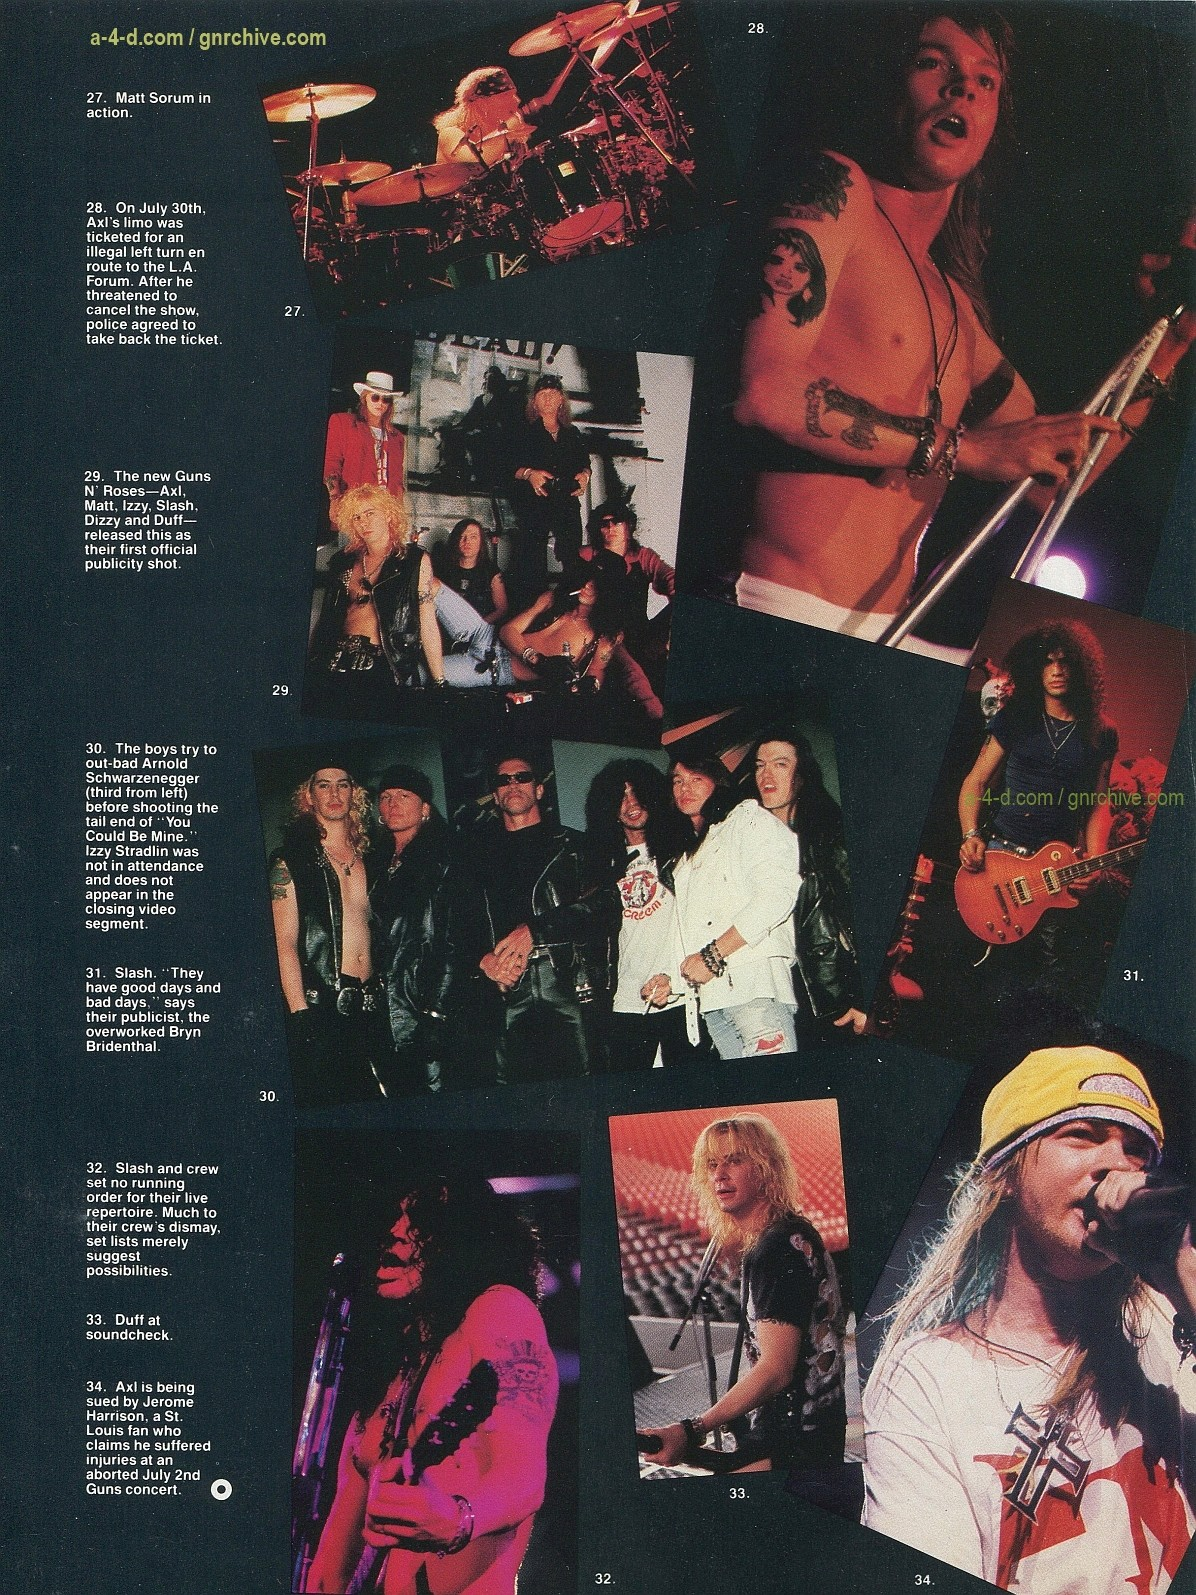 1991.10.31 - Circus - Axl Rose mocked/Fightin' words from Vince Neil 1991-117